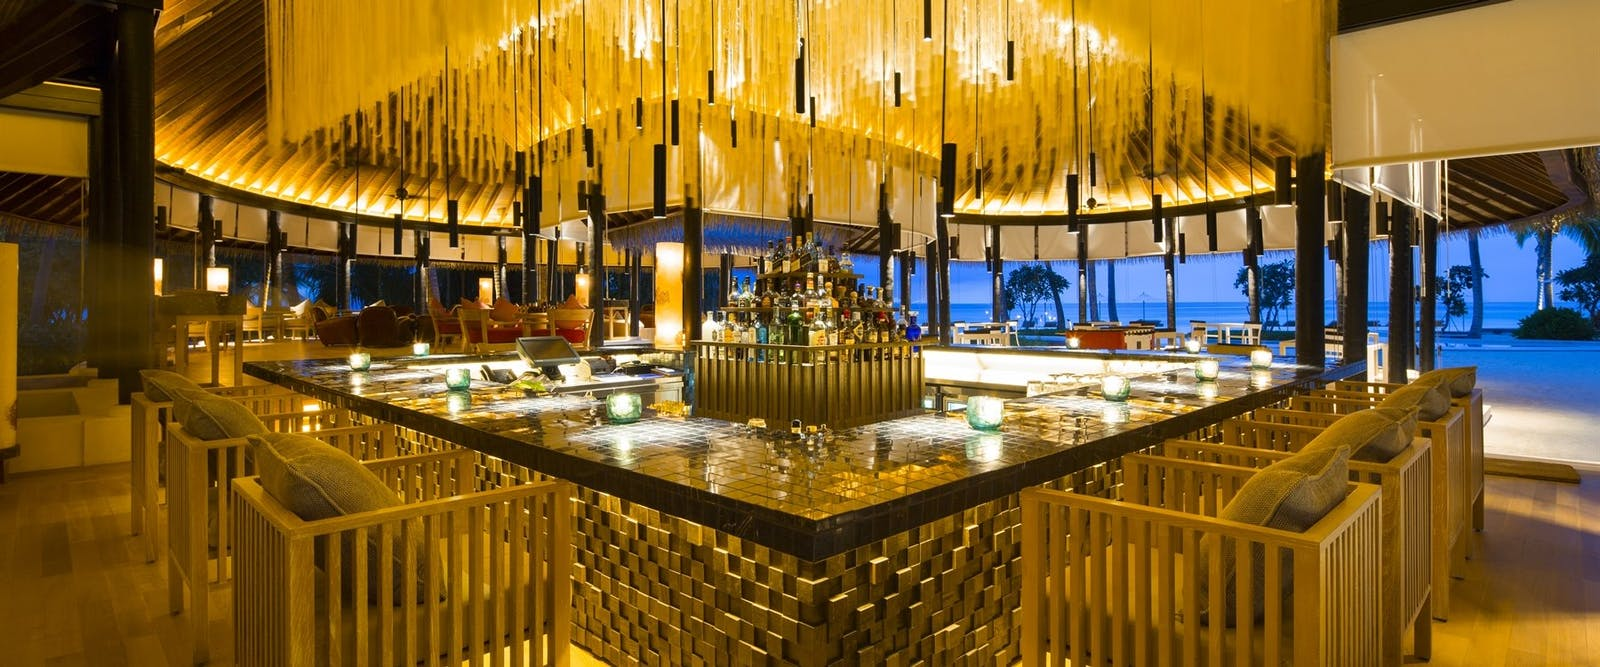 Thila Bar at COMO Maalifushi, Maldives, Indian Ocean